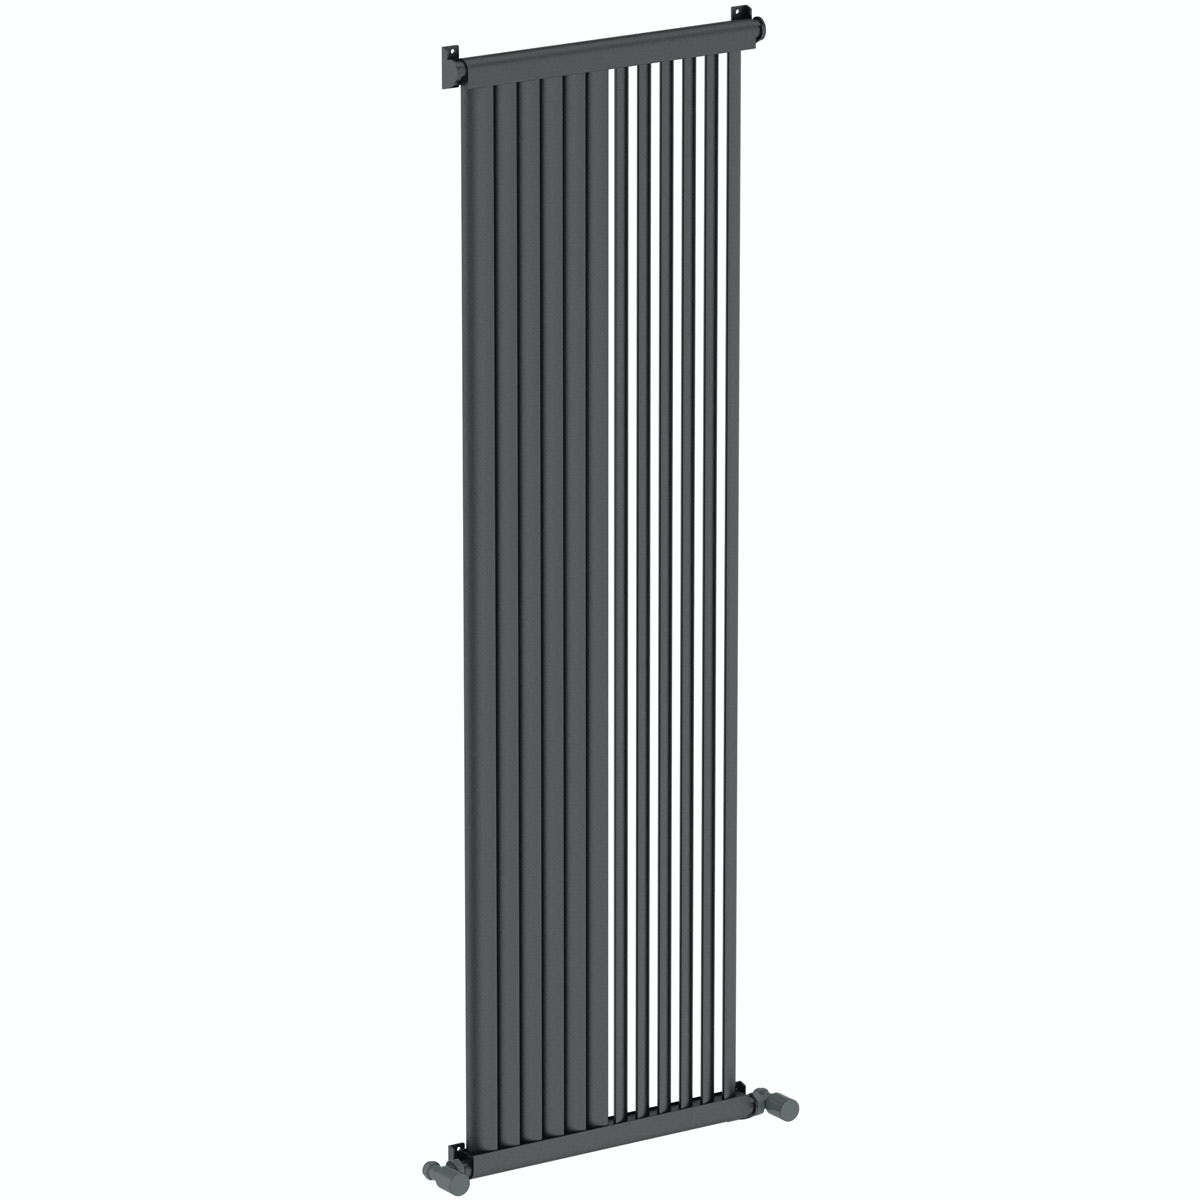 Mode Zephyra anthracite vertical radiator 1500 x 468